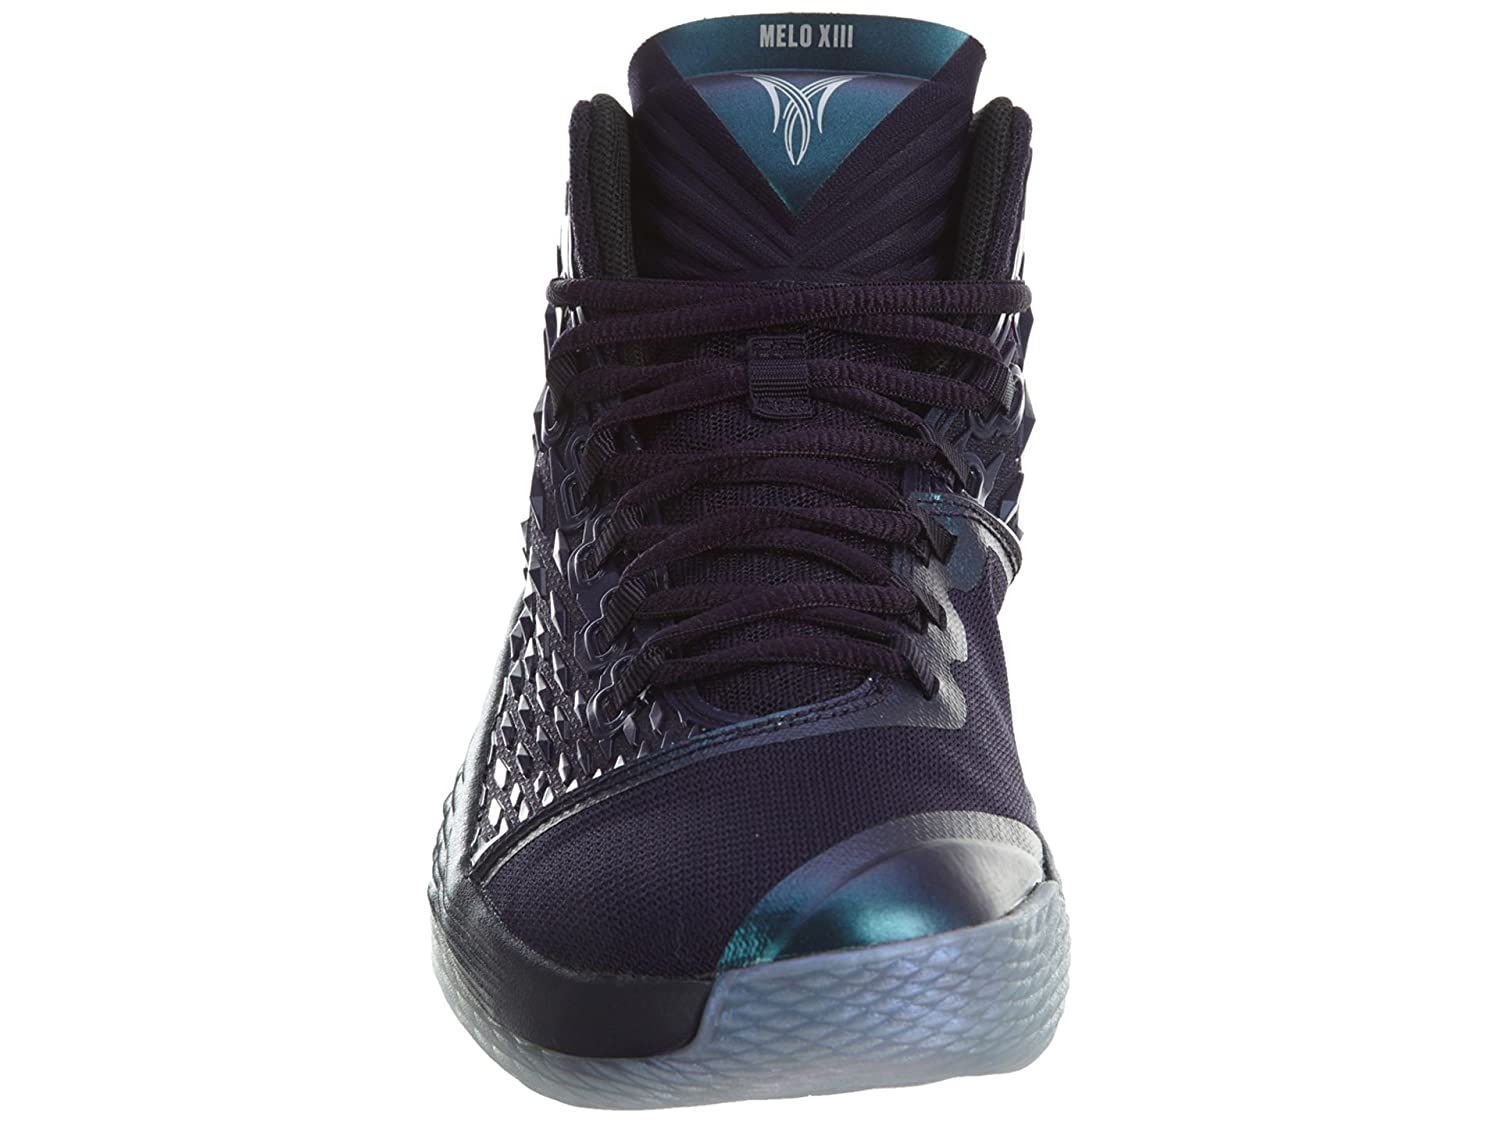 wholesale dealer 44987 80aaf Jordan Nike Men's Melo M13 Basketball Shoe